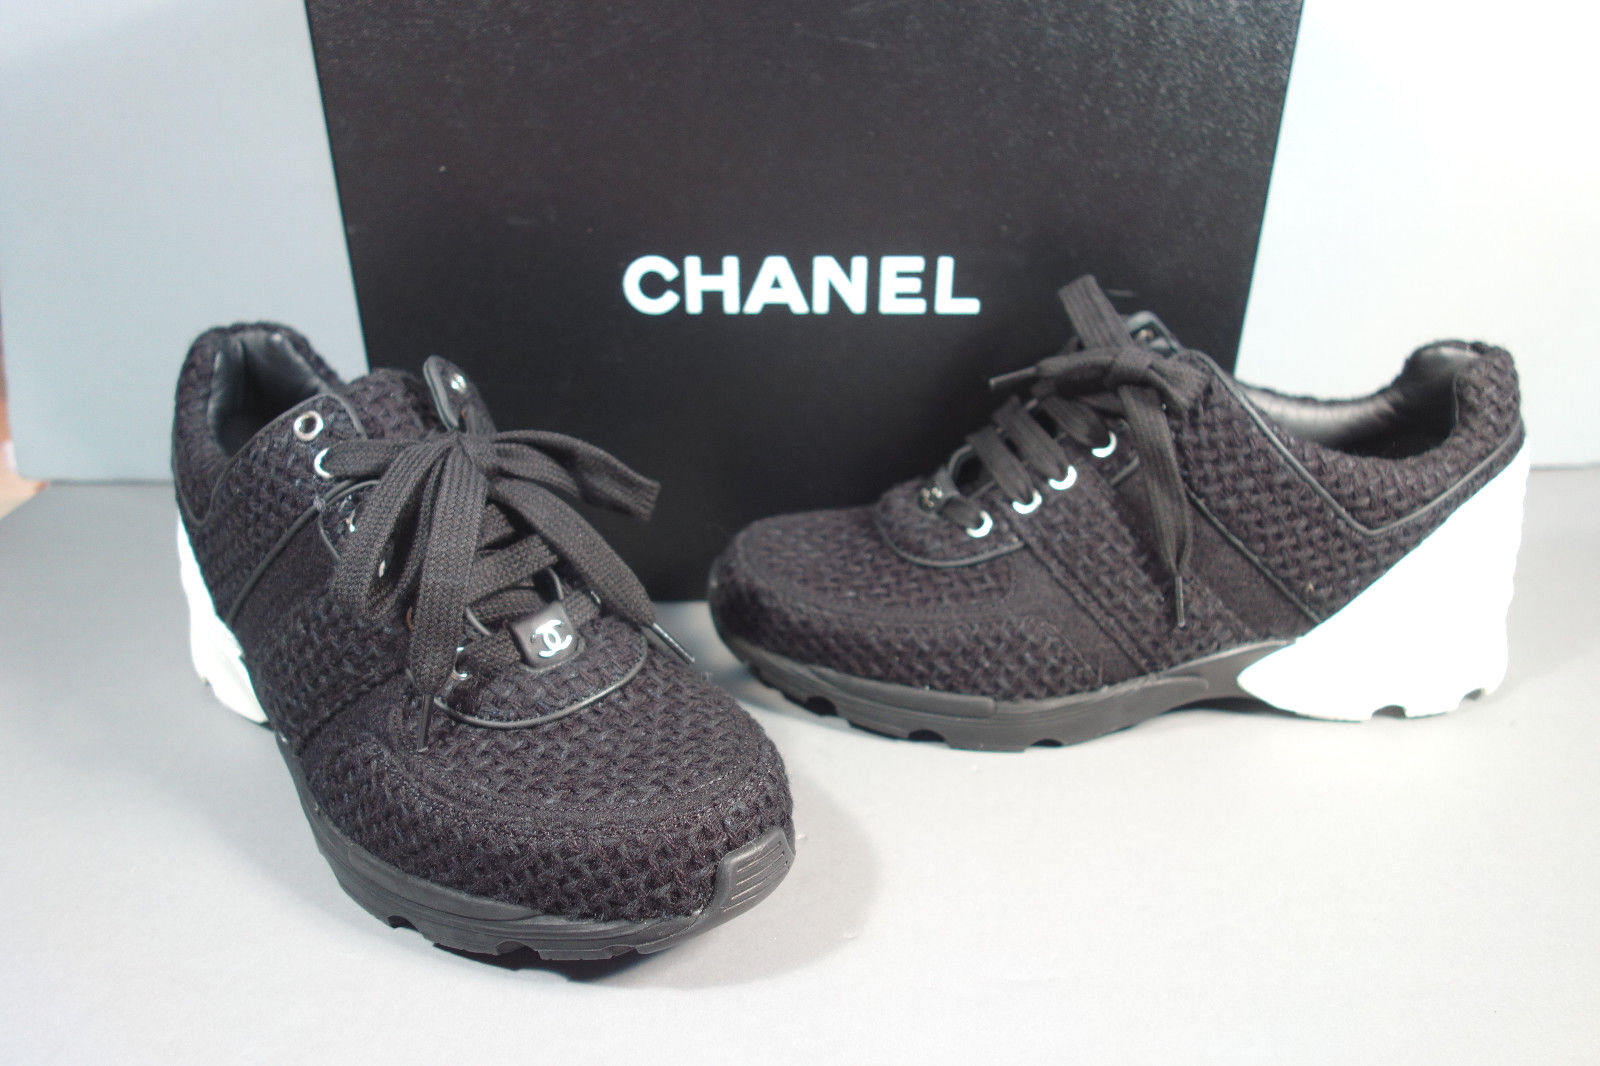 CHANEL 36.5 6 Black White Tweed Leather Lace up SNEAKERS Tennis ... 077526dc0d6